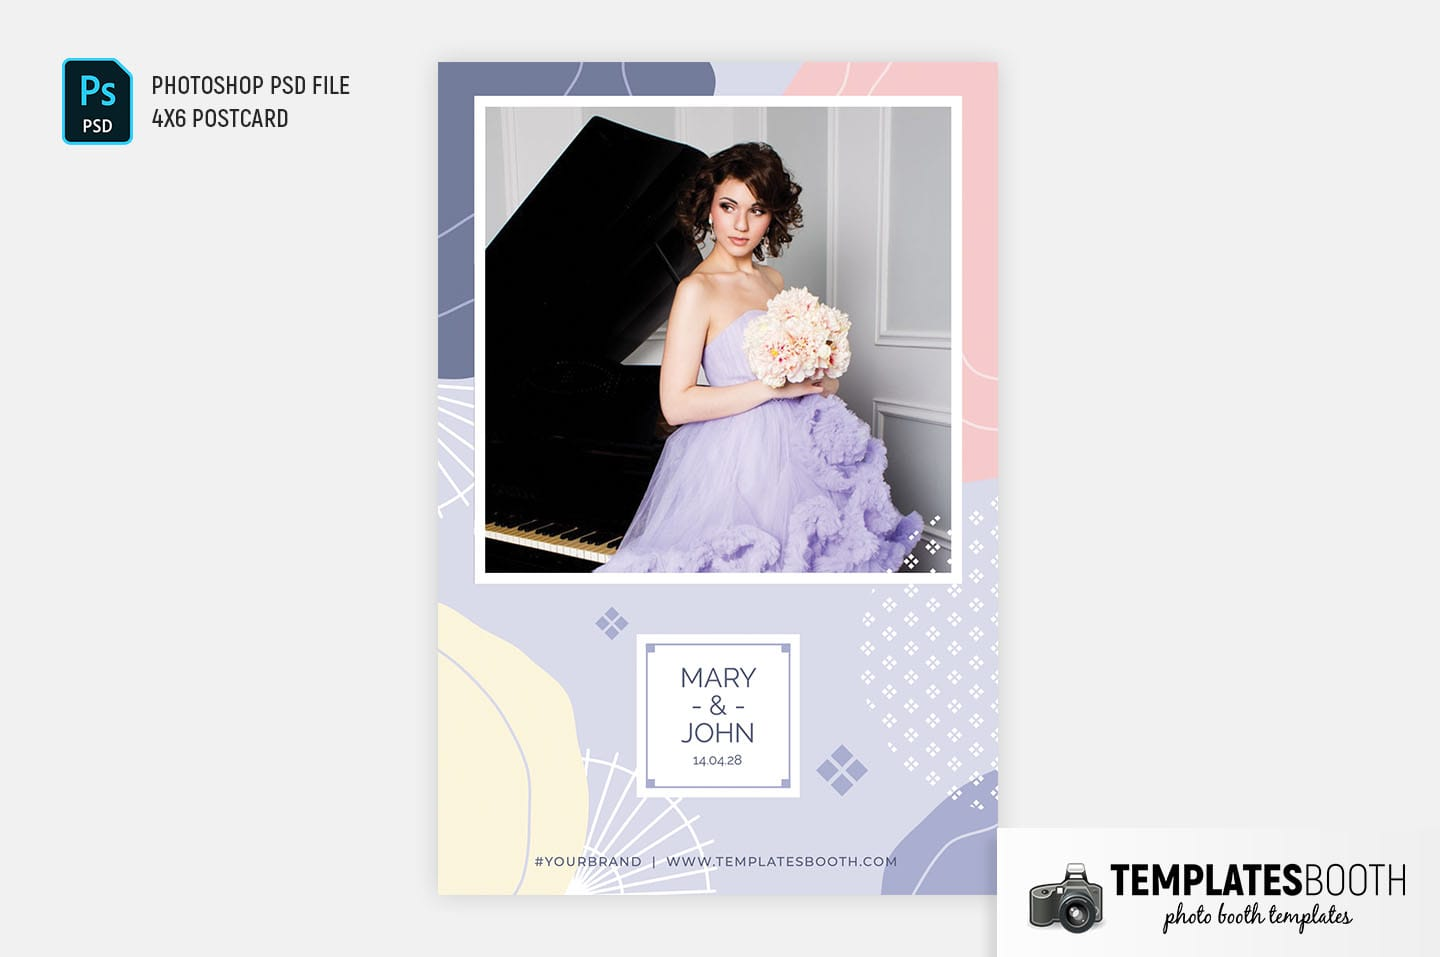 Abstract Pastel Photo Booth Template (4x6 postcard)